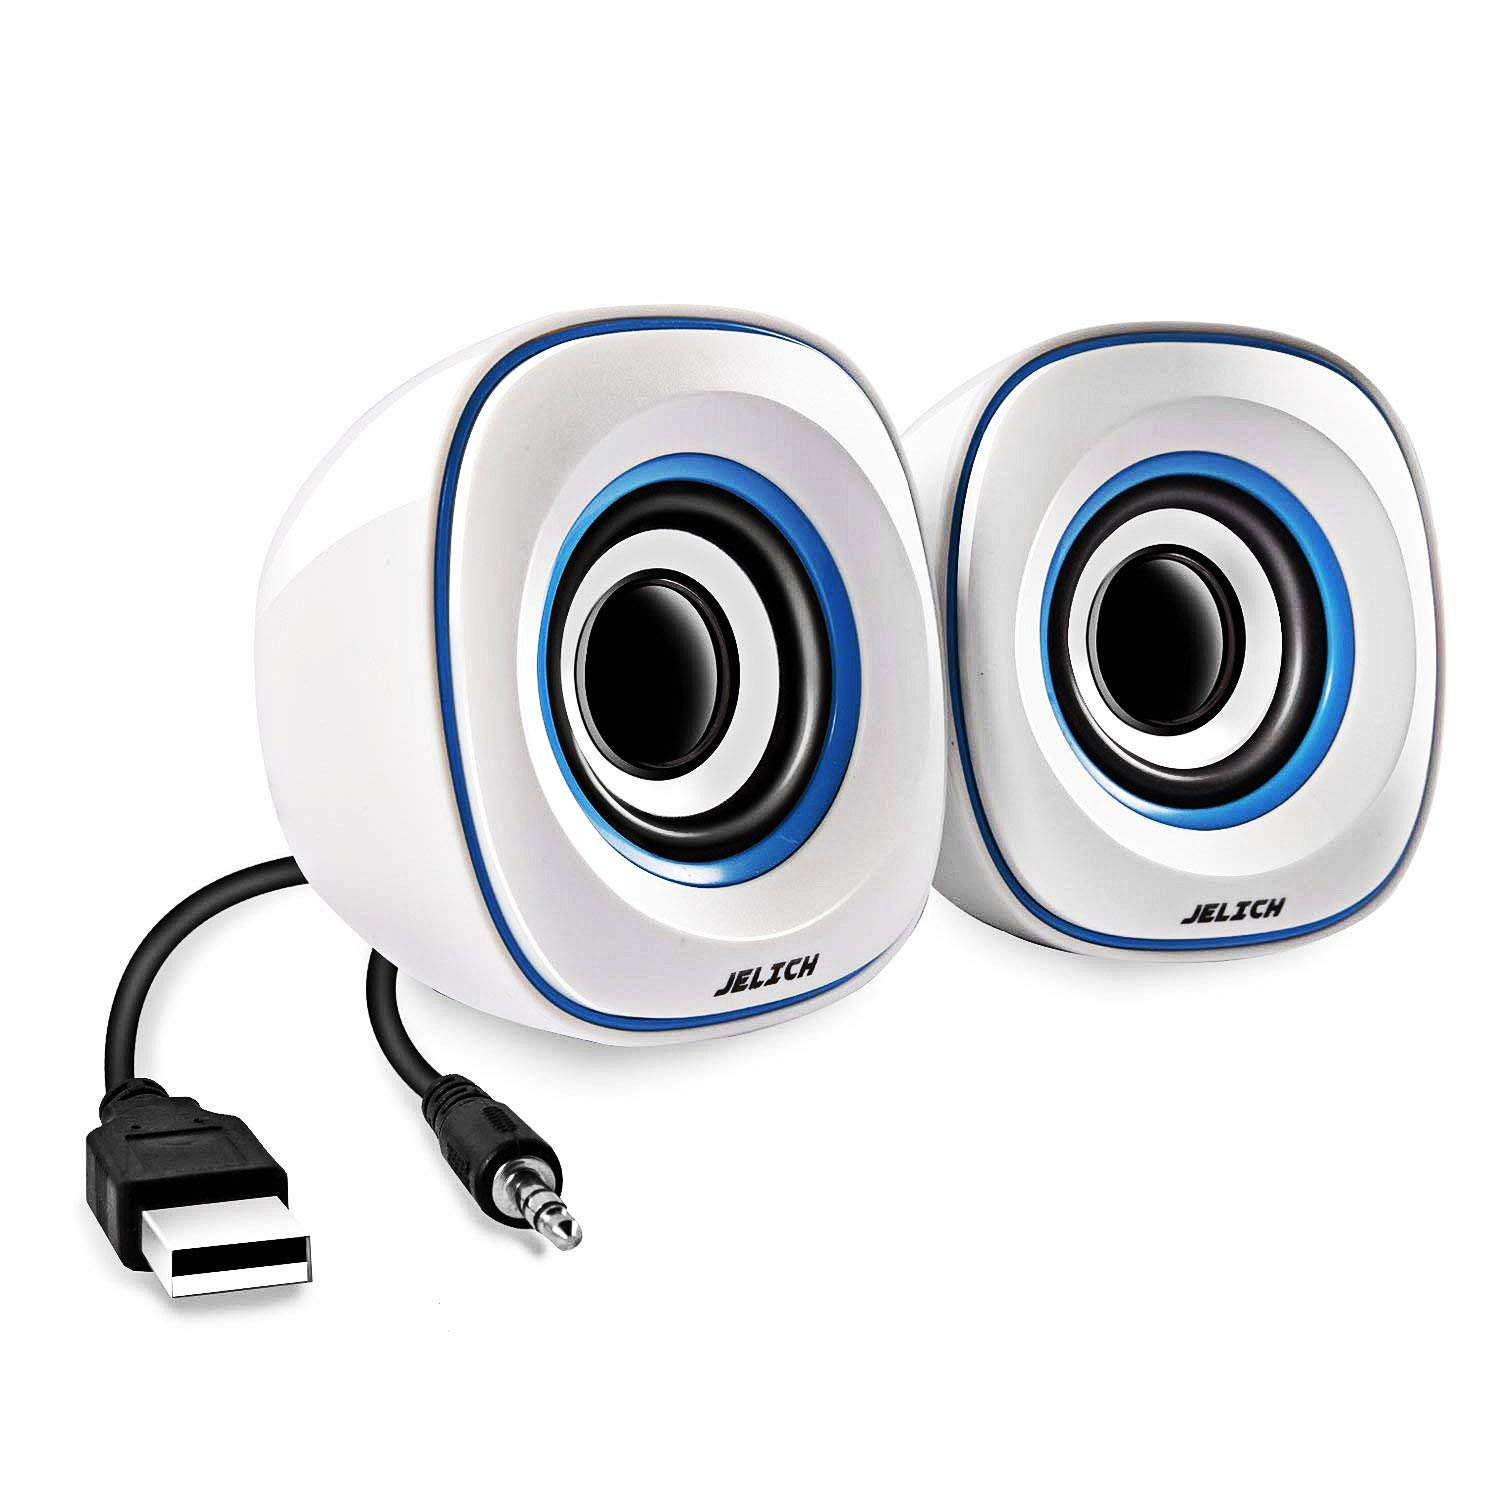 JELICH Mini USB Computer Speakers - Wired USB Powered Multimedia Small Speakers with light music needs for PC /Desktop /Laptops /Smart Phone by JELICH